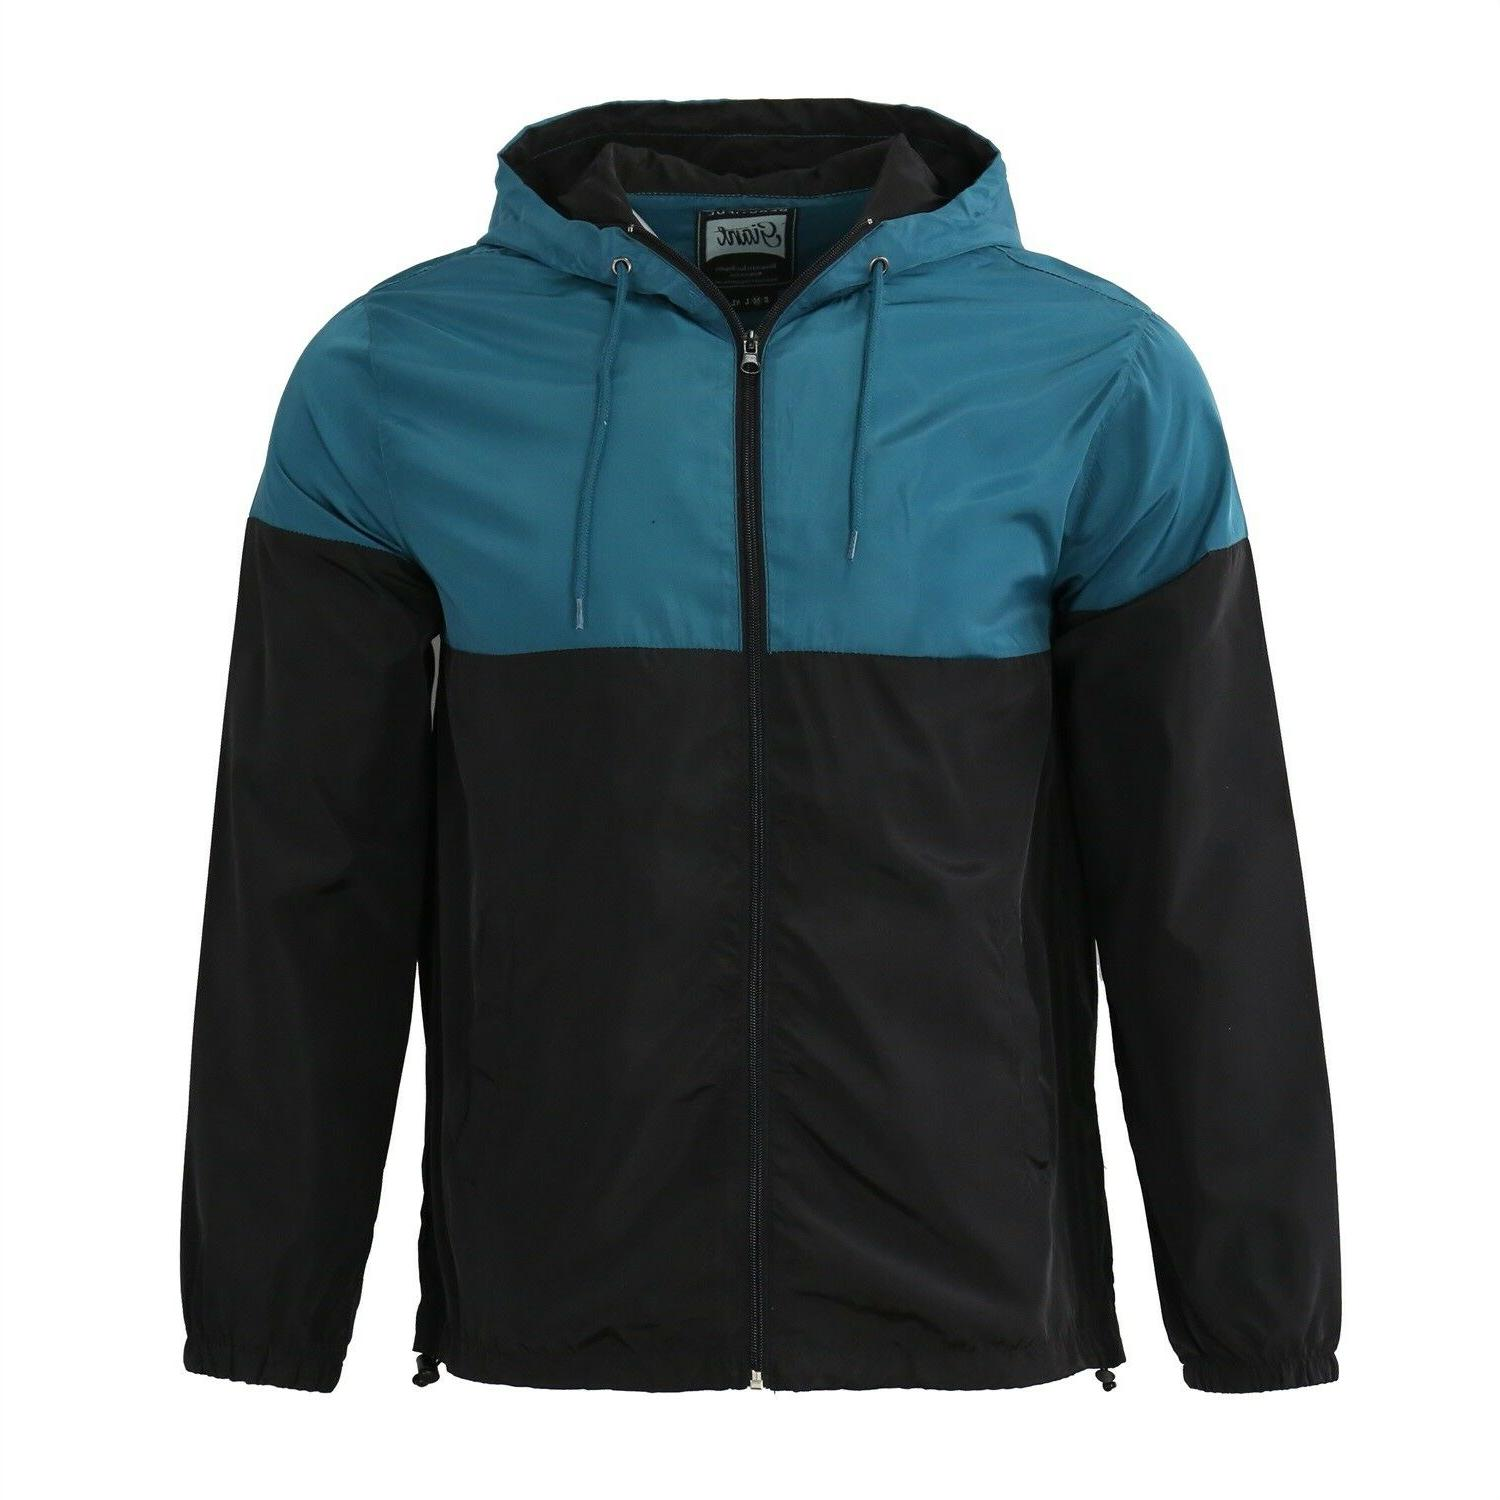 Men's Hooded Lightweight Windbreaker Windproof Outdoor Rain